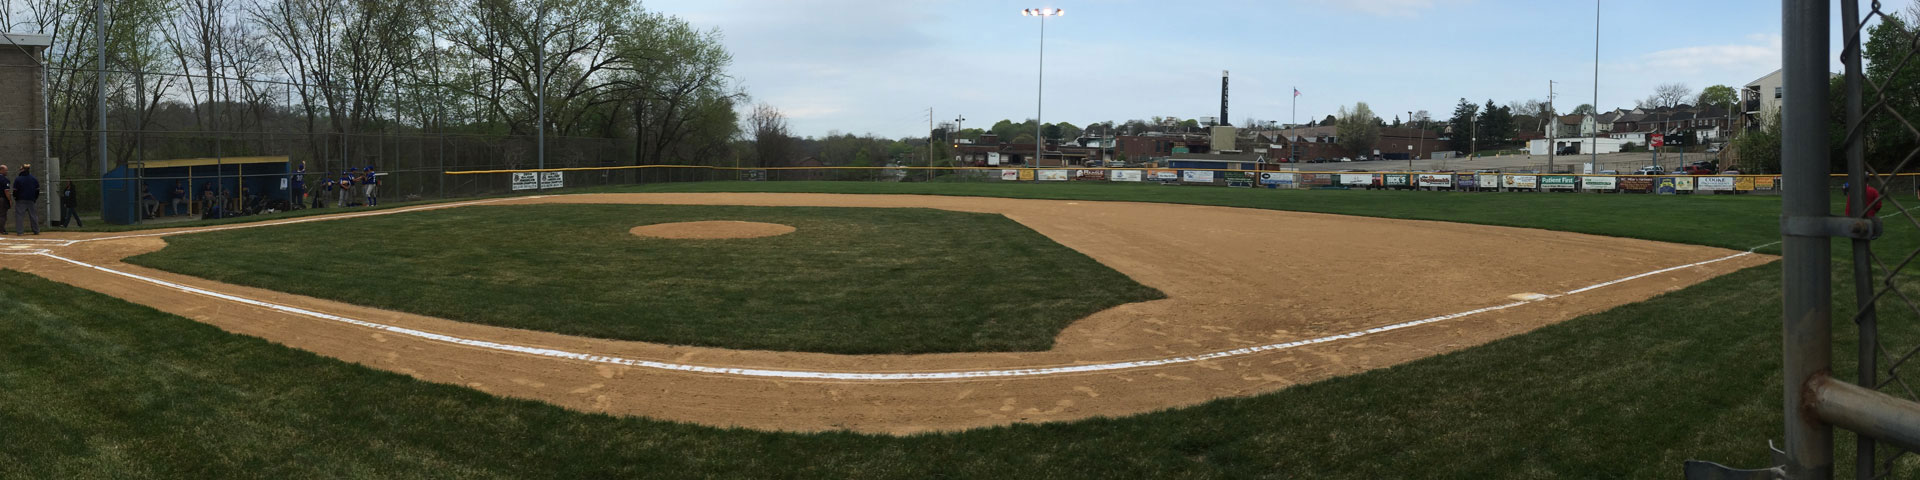 A baseball field in early spring. The field is green, but little else is.